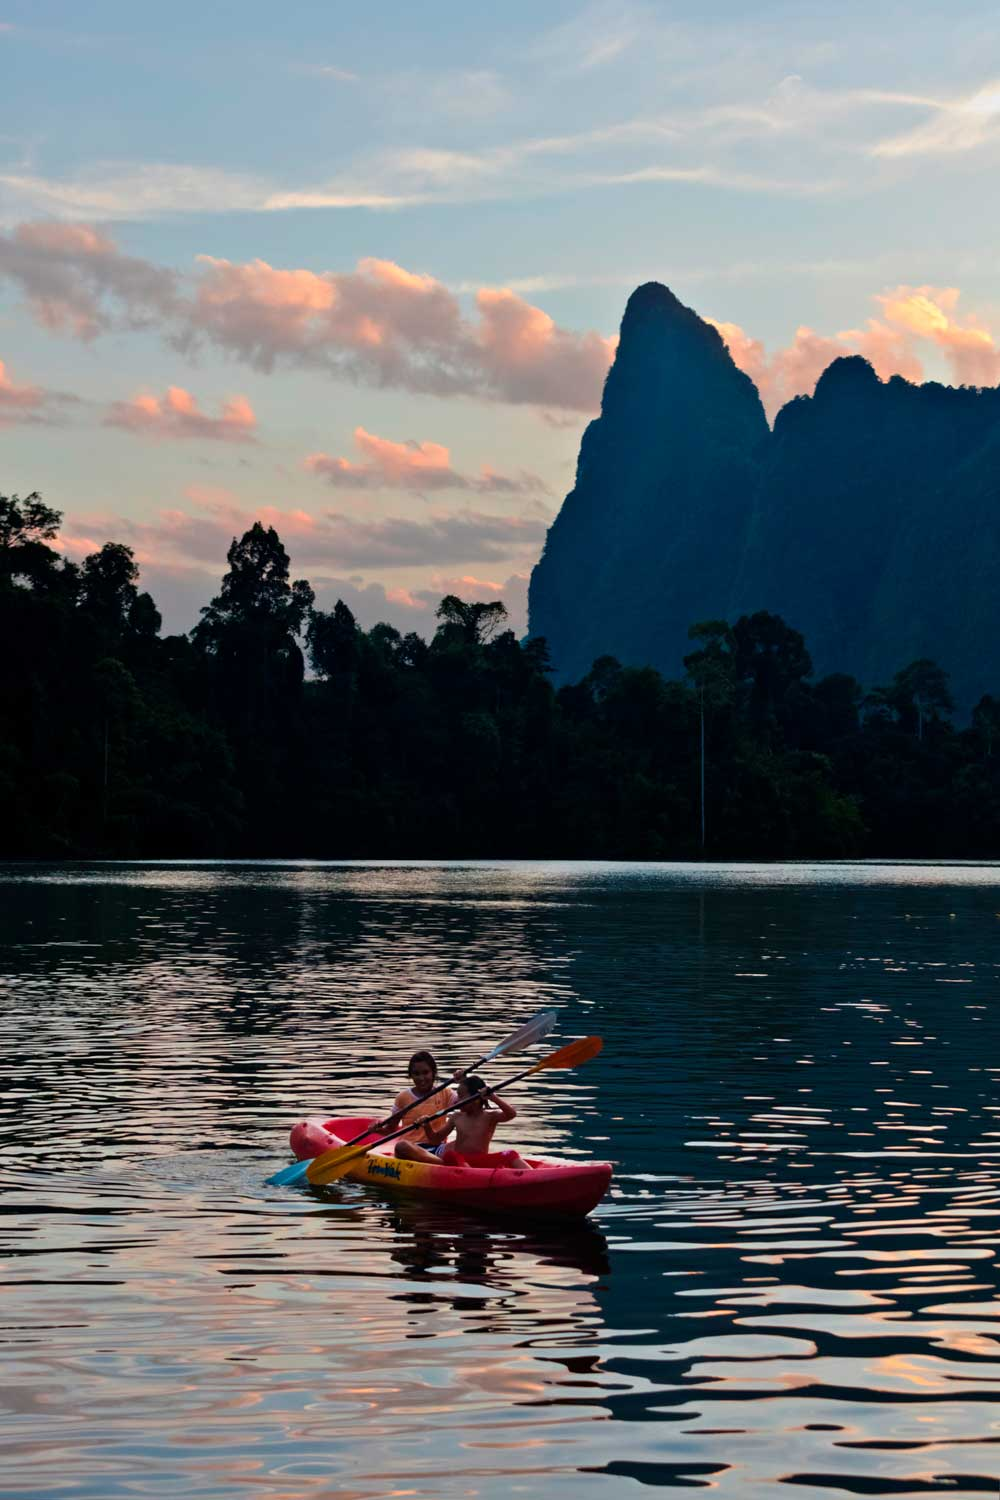 Where is Khao Sok national park